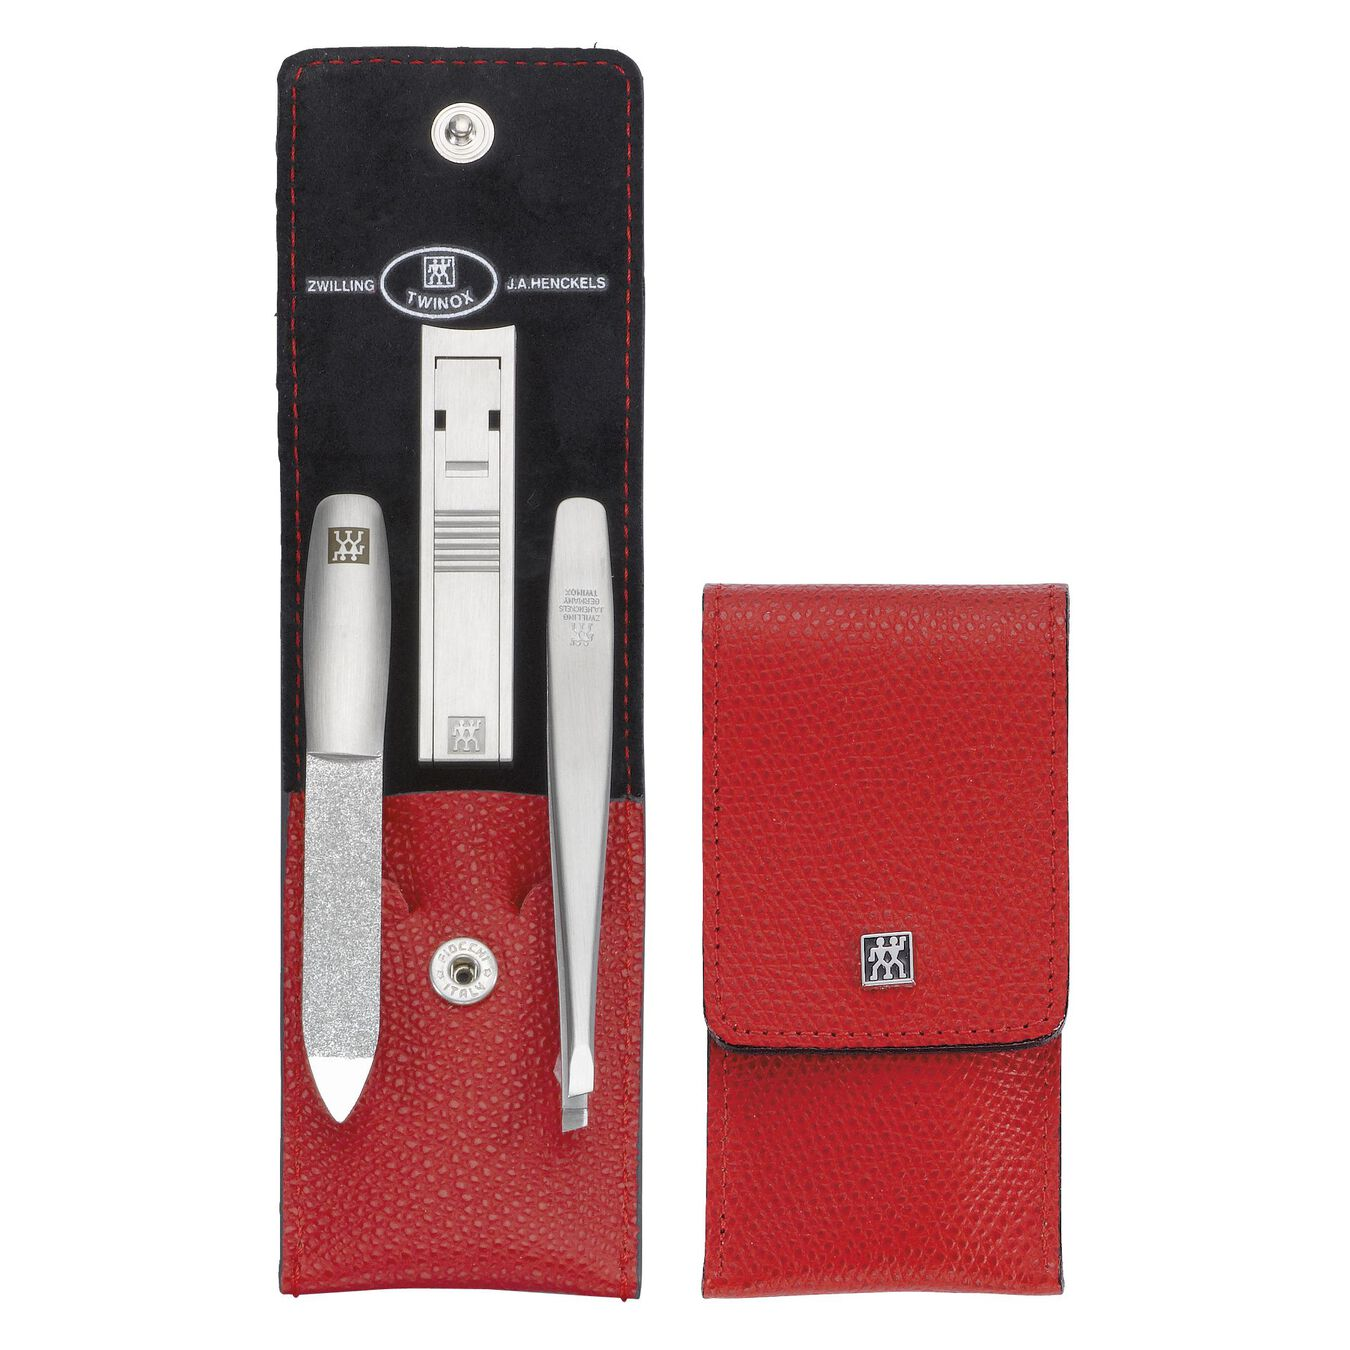 Snap fastener case, 4 Piece   stainless steel   red,,large 3